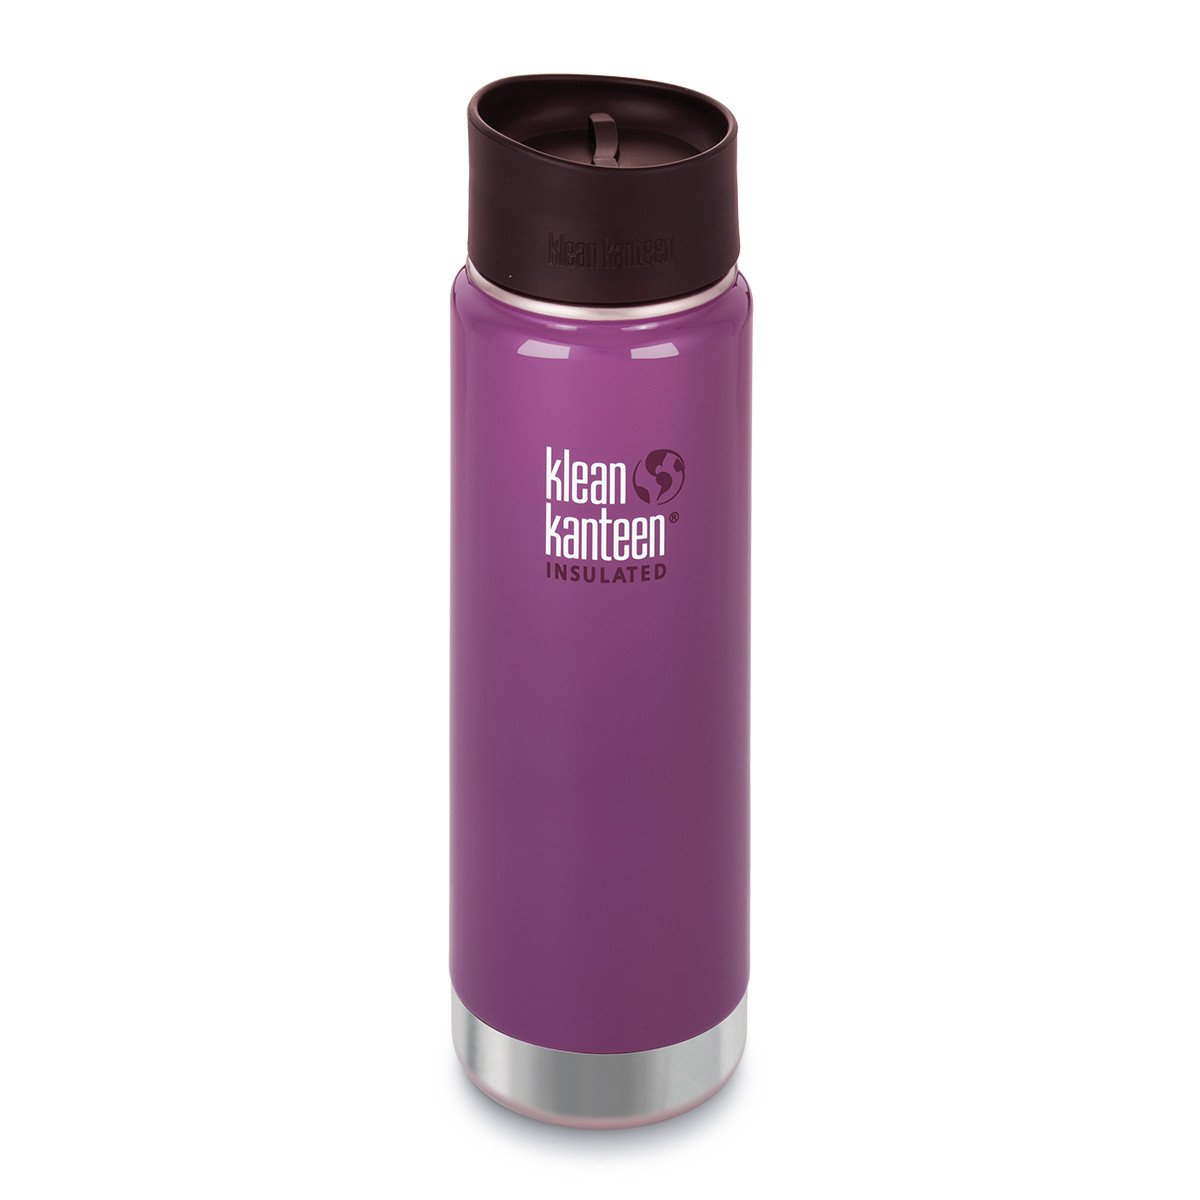 Klean Kanteen Wide Mouth Insulated Stainless Steel Water Bottle